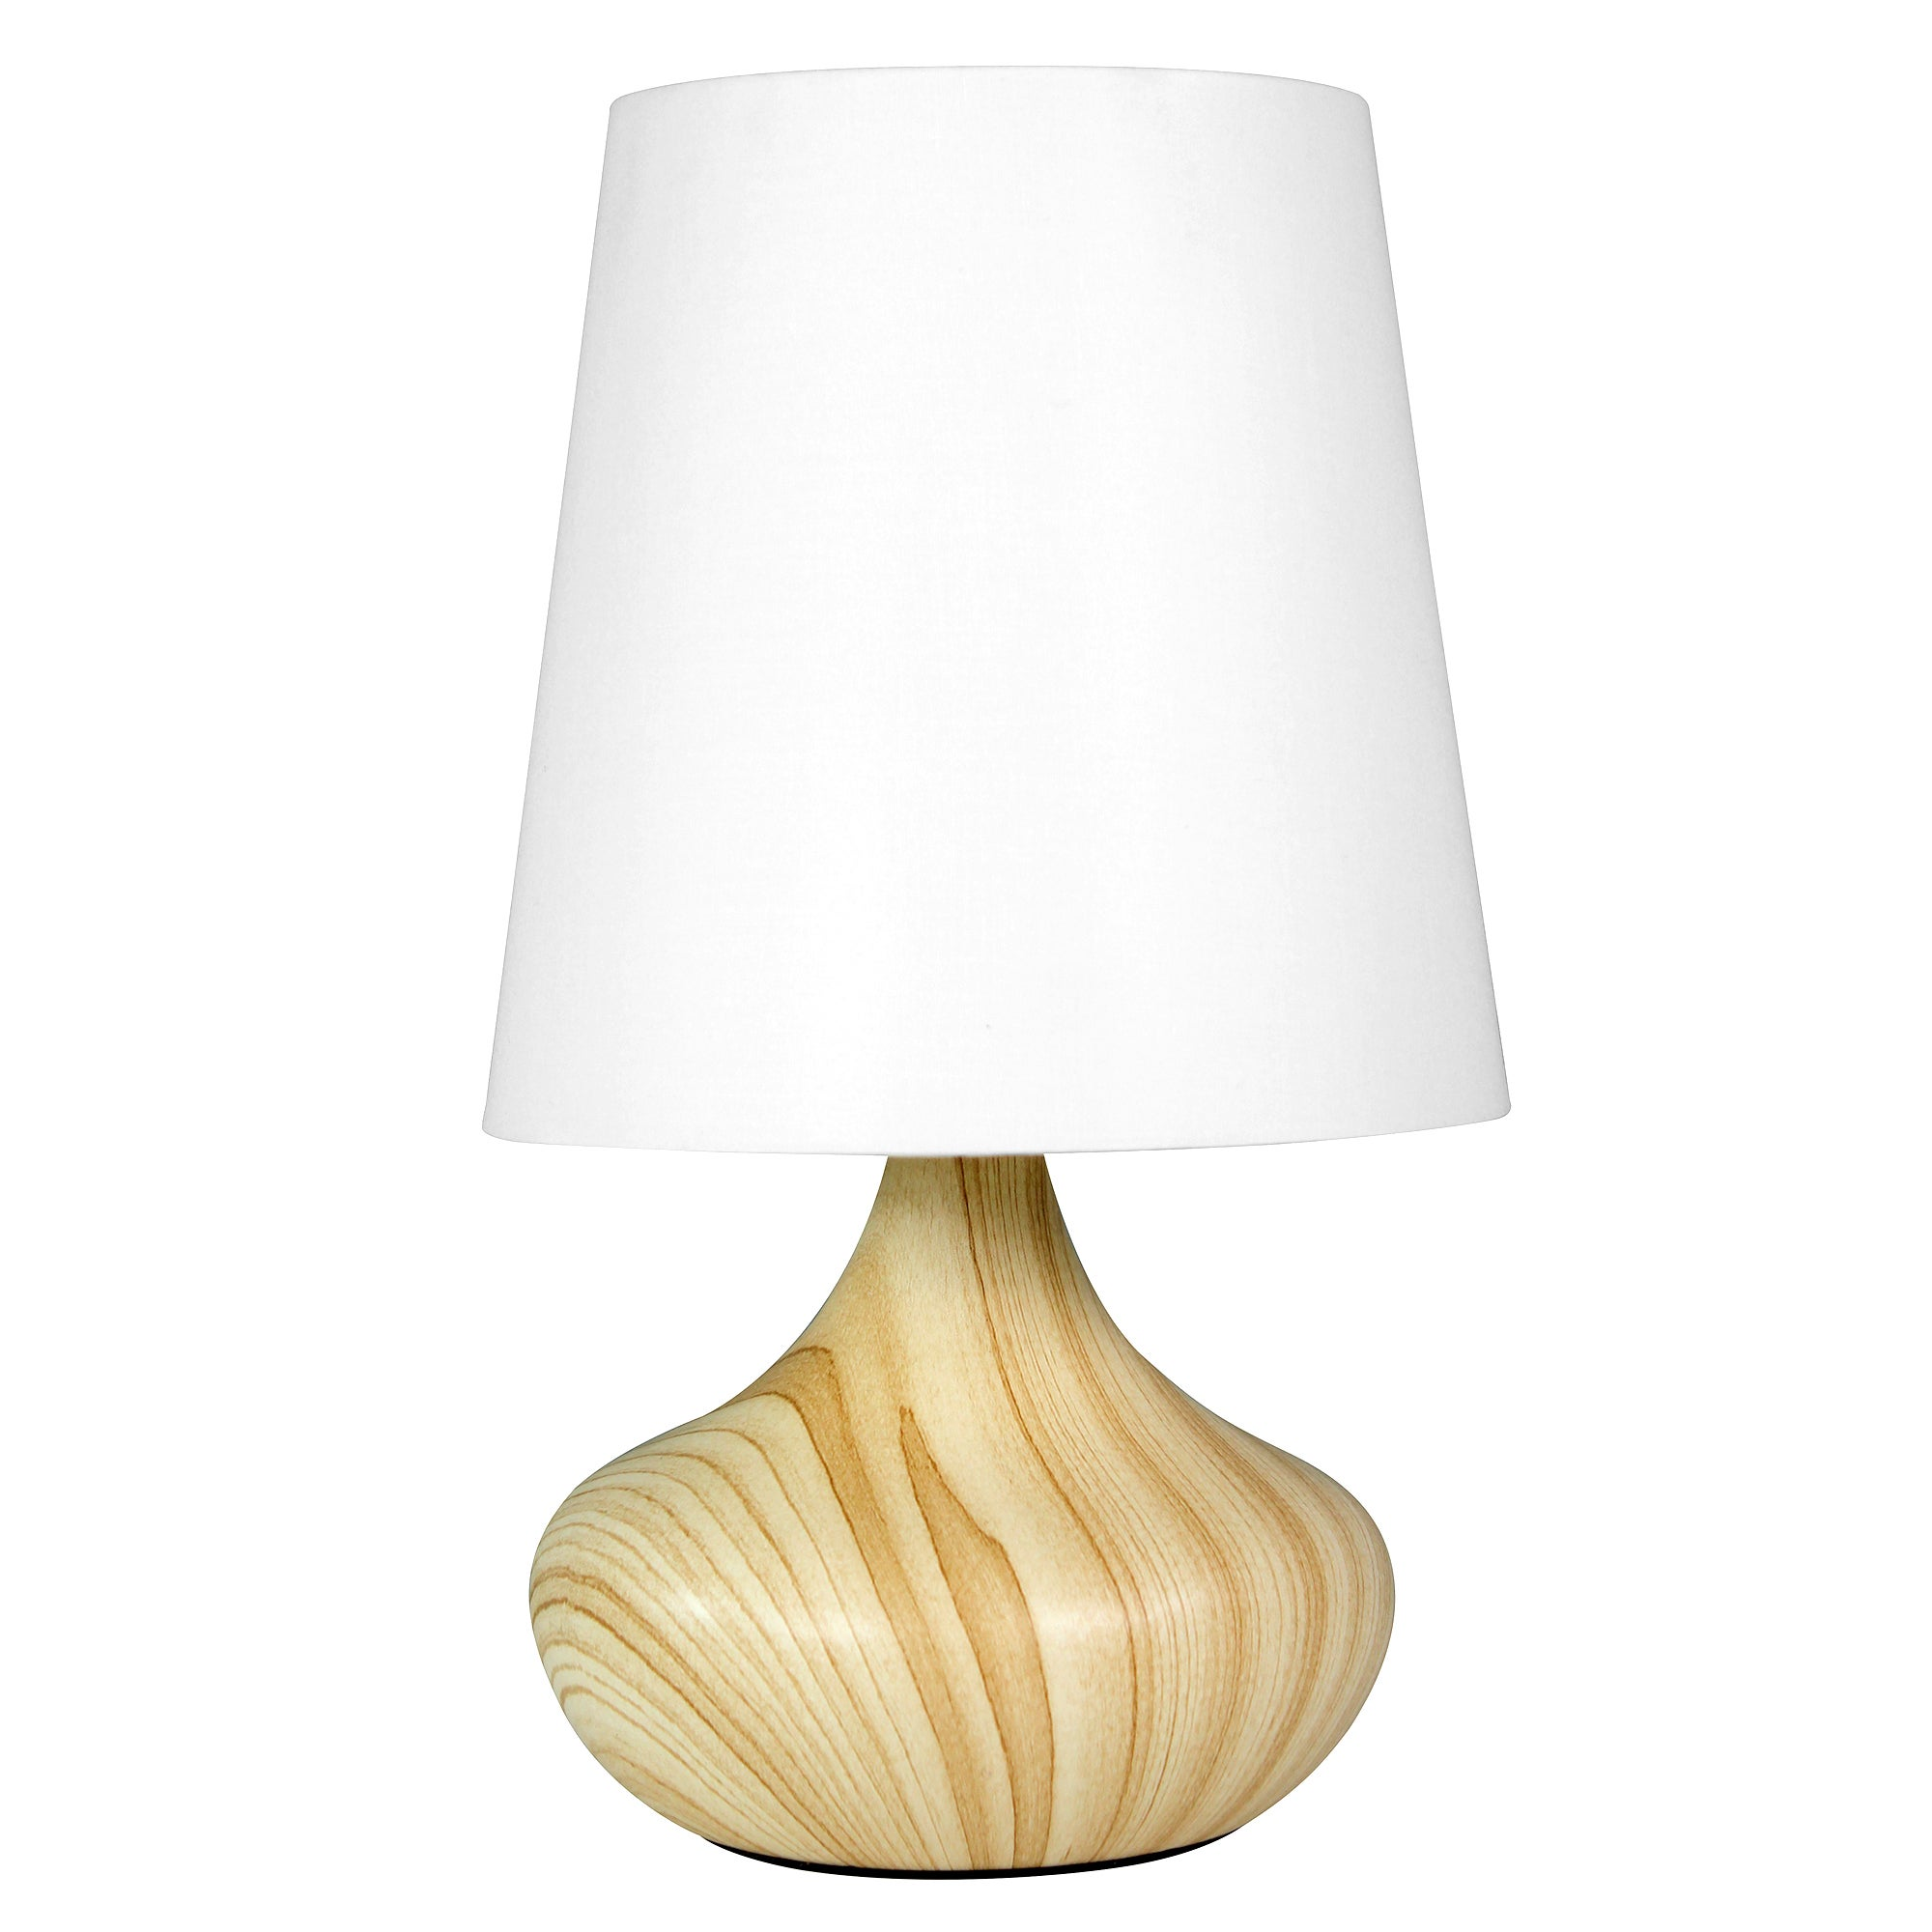 Wood Effect Table Lamp